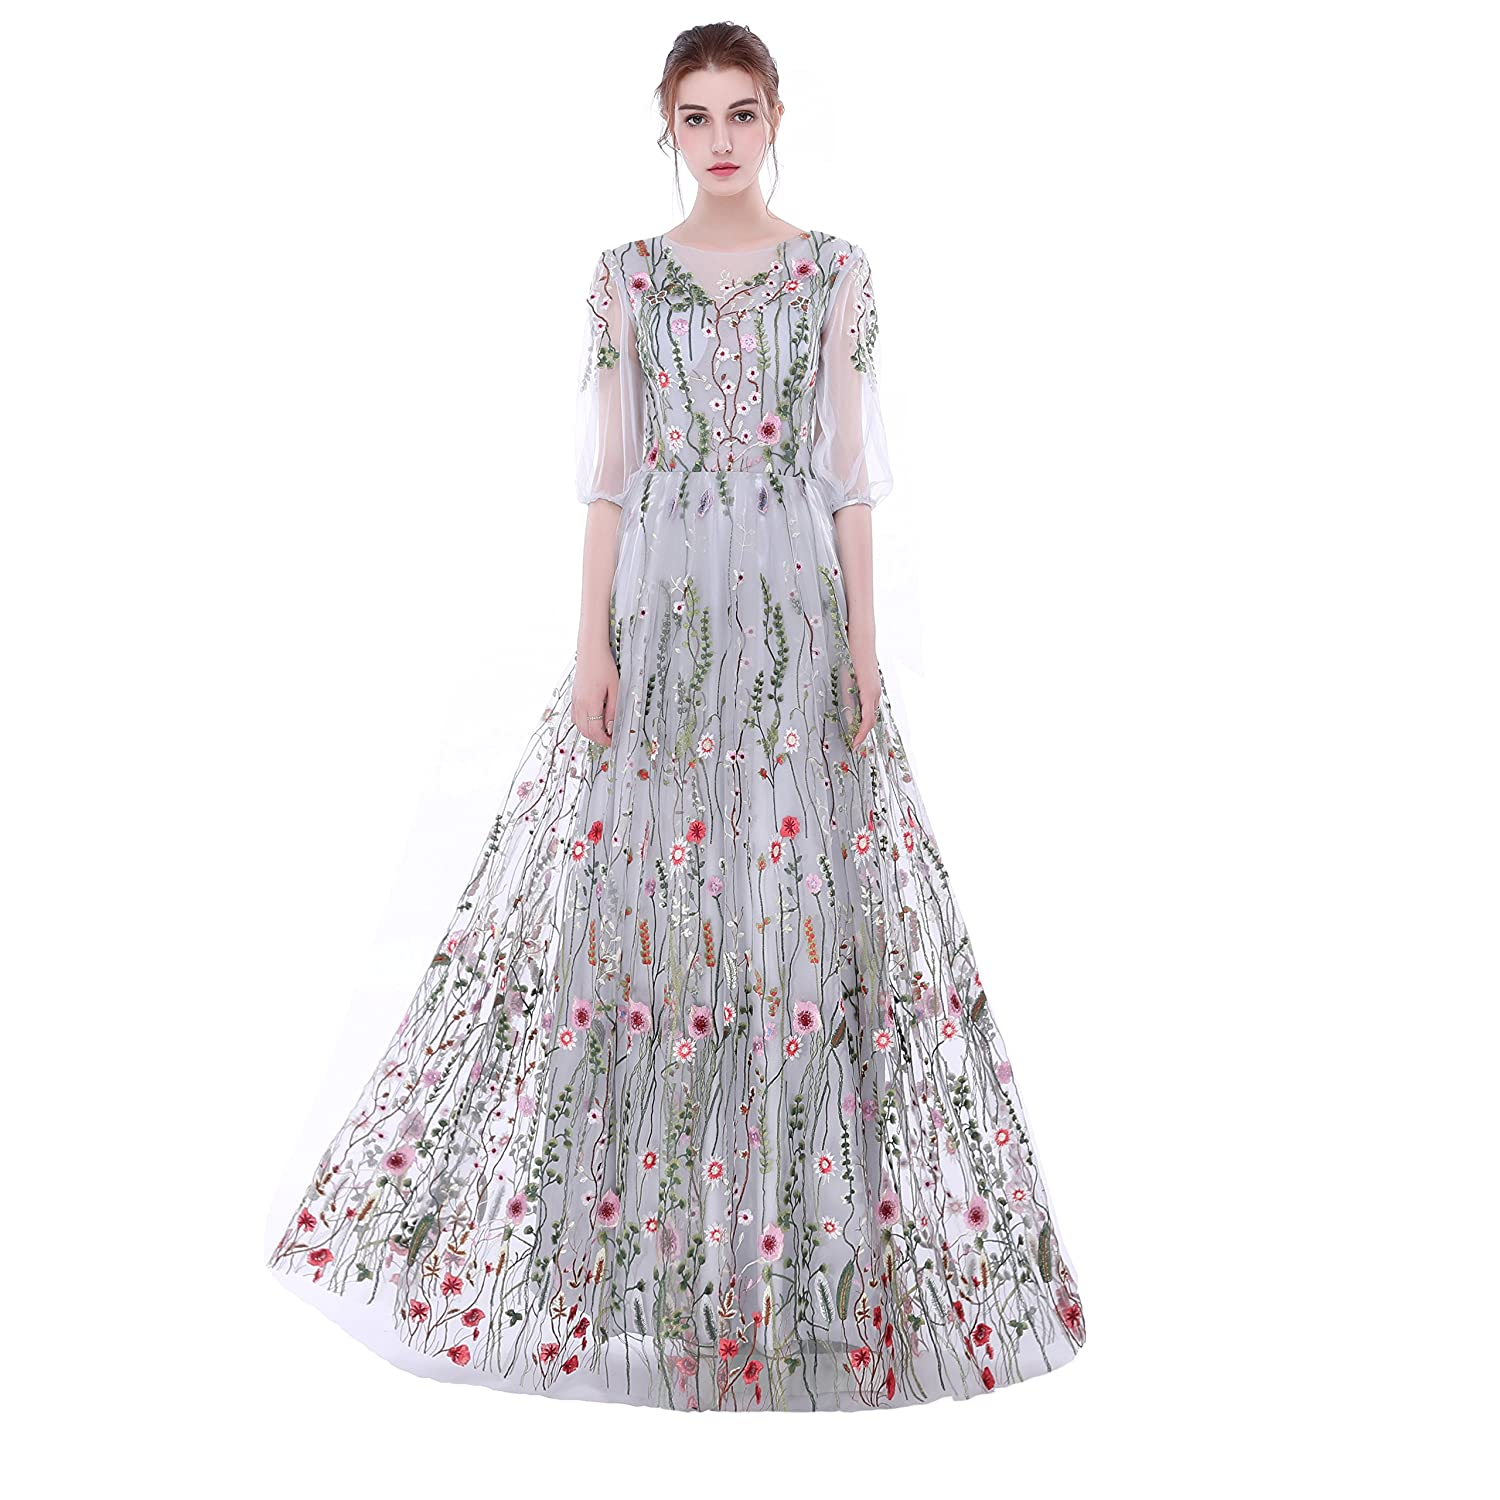 Amazon.com: Dobelove Womens Long Sleeves Floral Embroidery A-line Evening Dress: Clothing